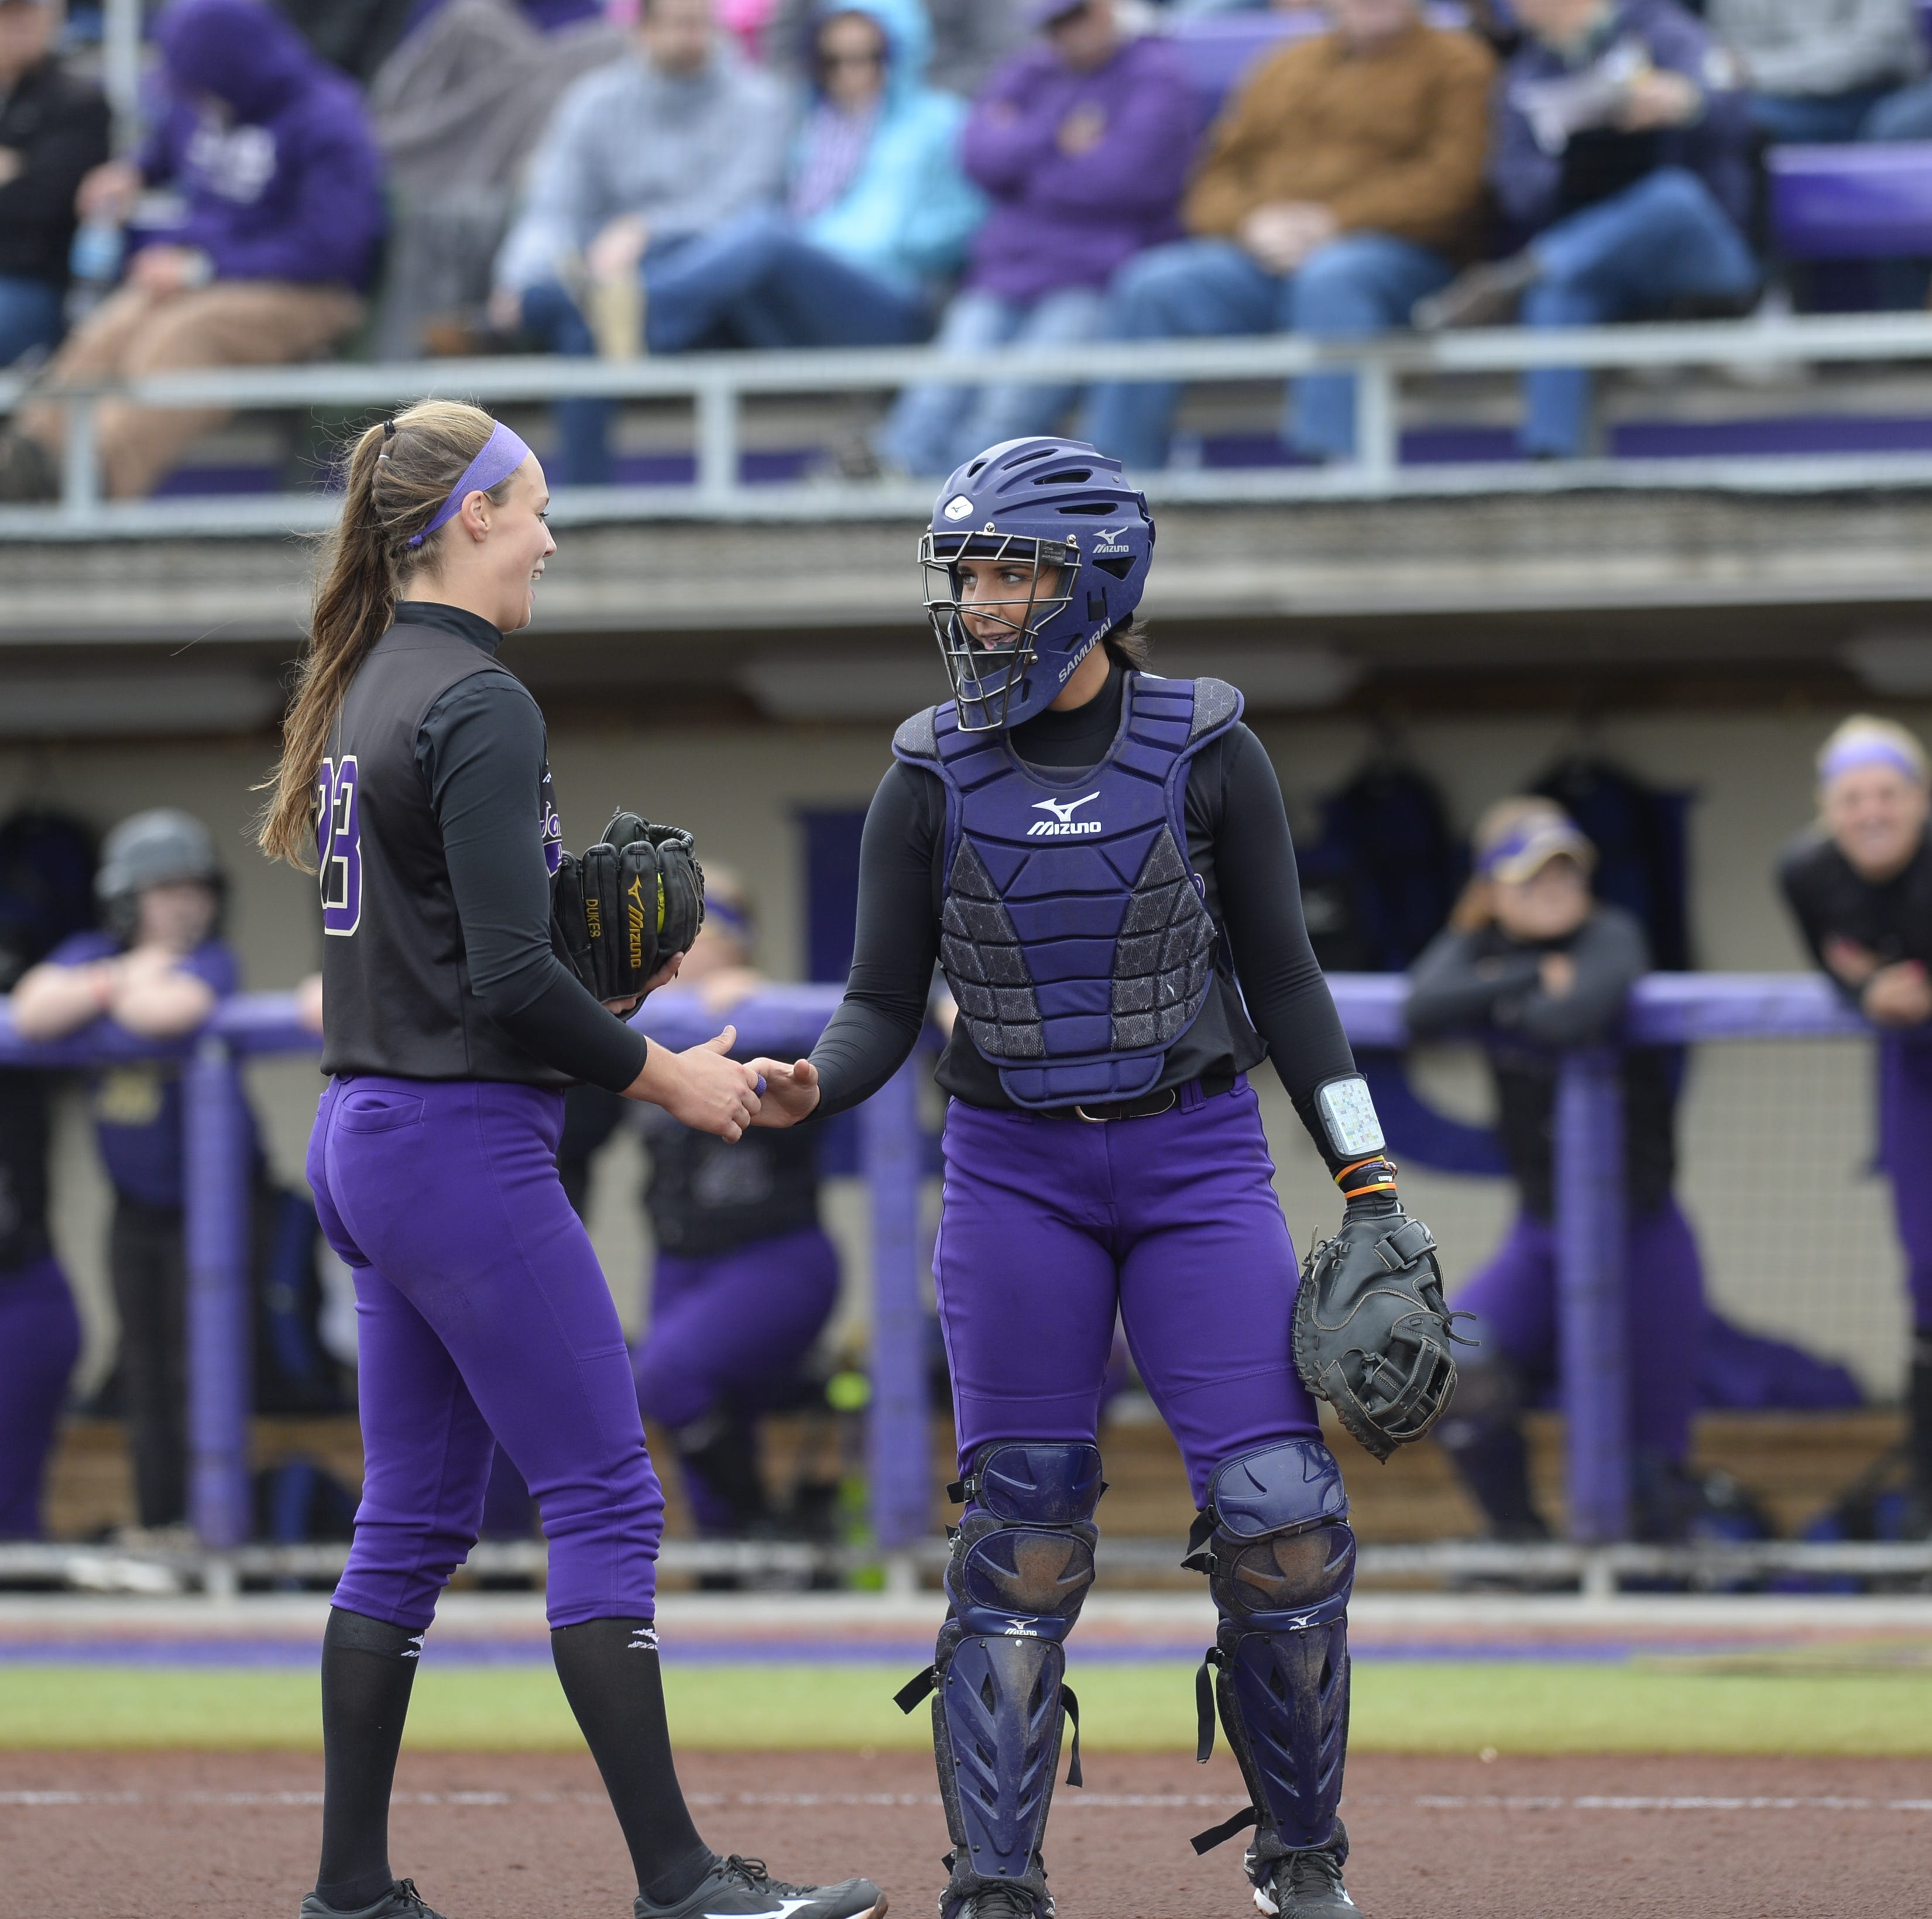 JMU softball's Megan Good: 3 questions with